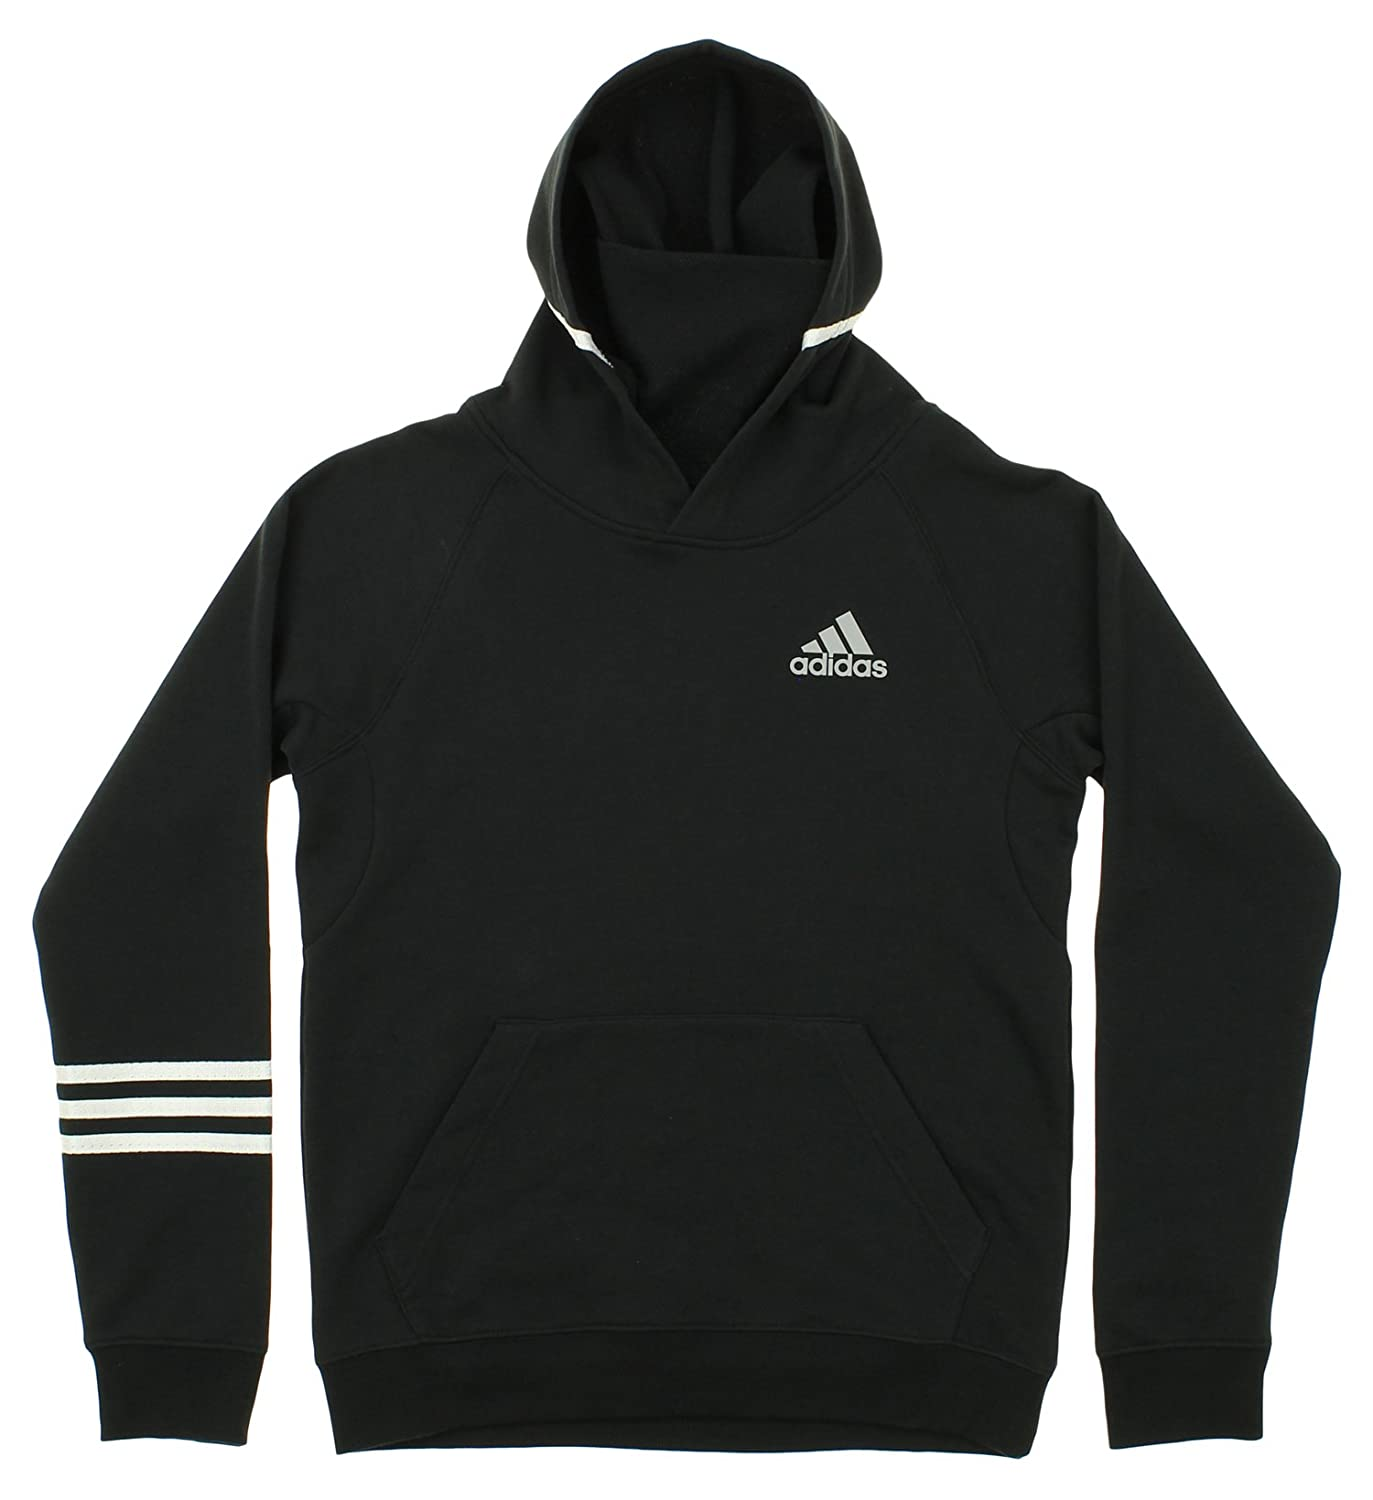 adidas Youth Streetball Pullover Hoodie Black/White Small (8)